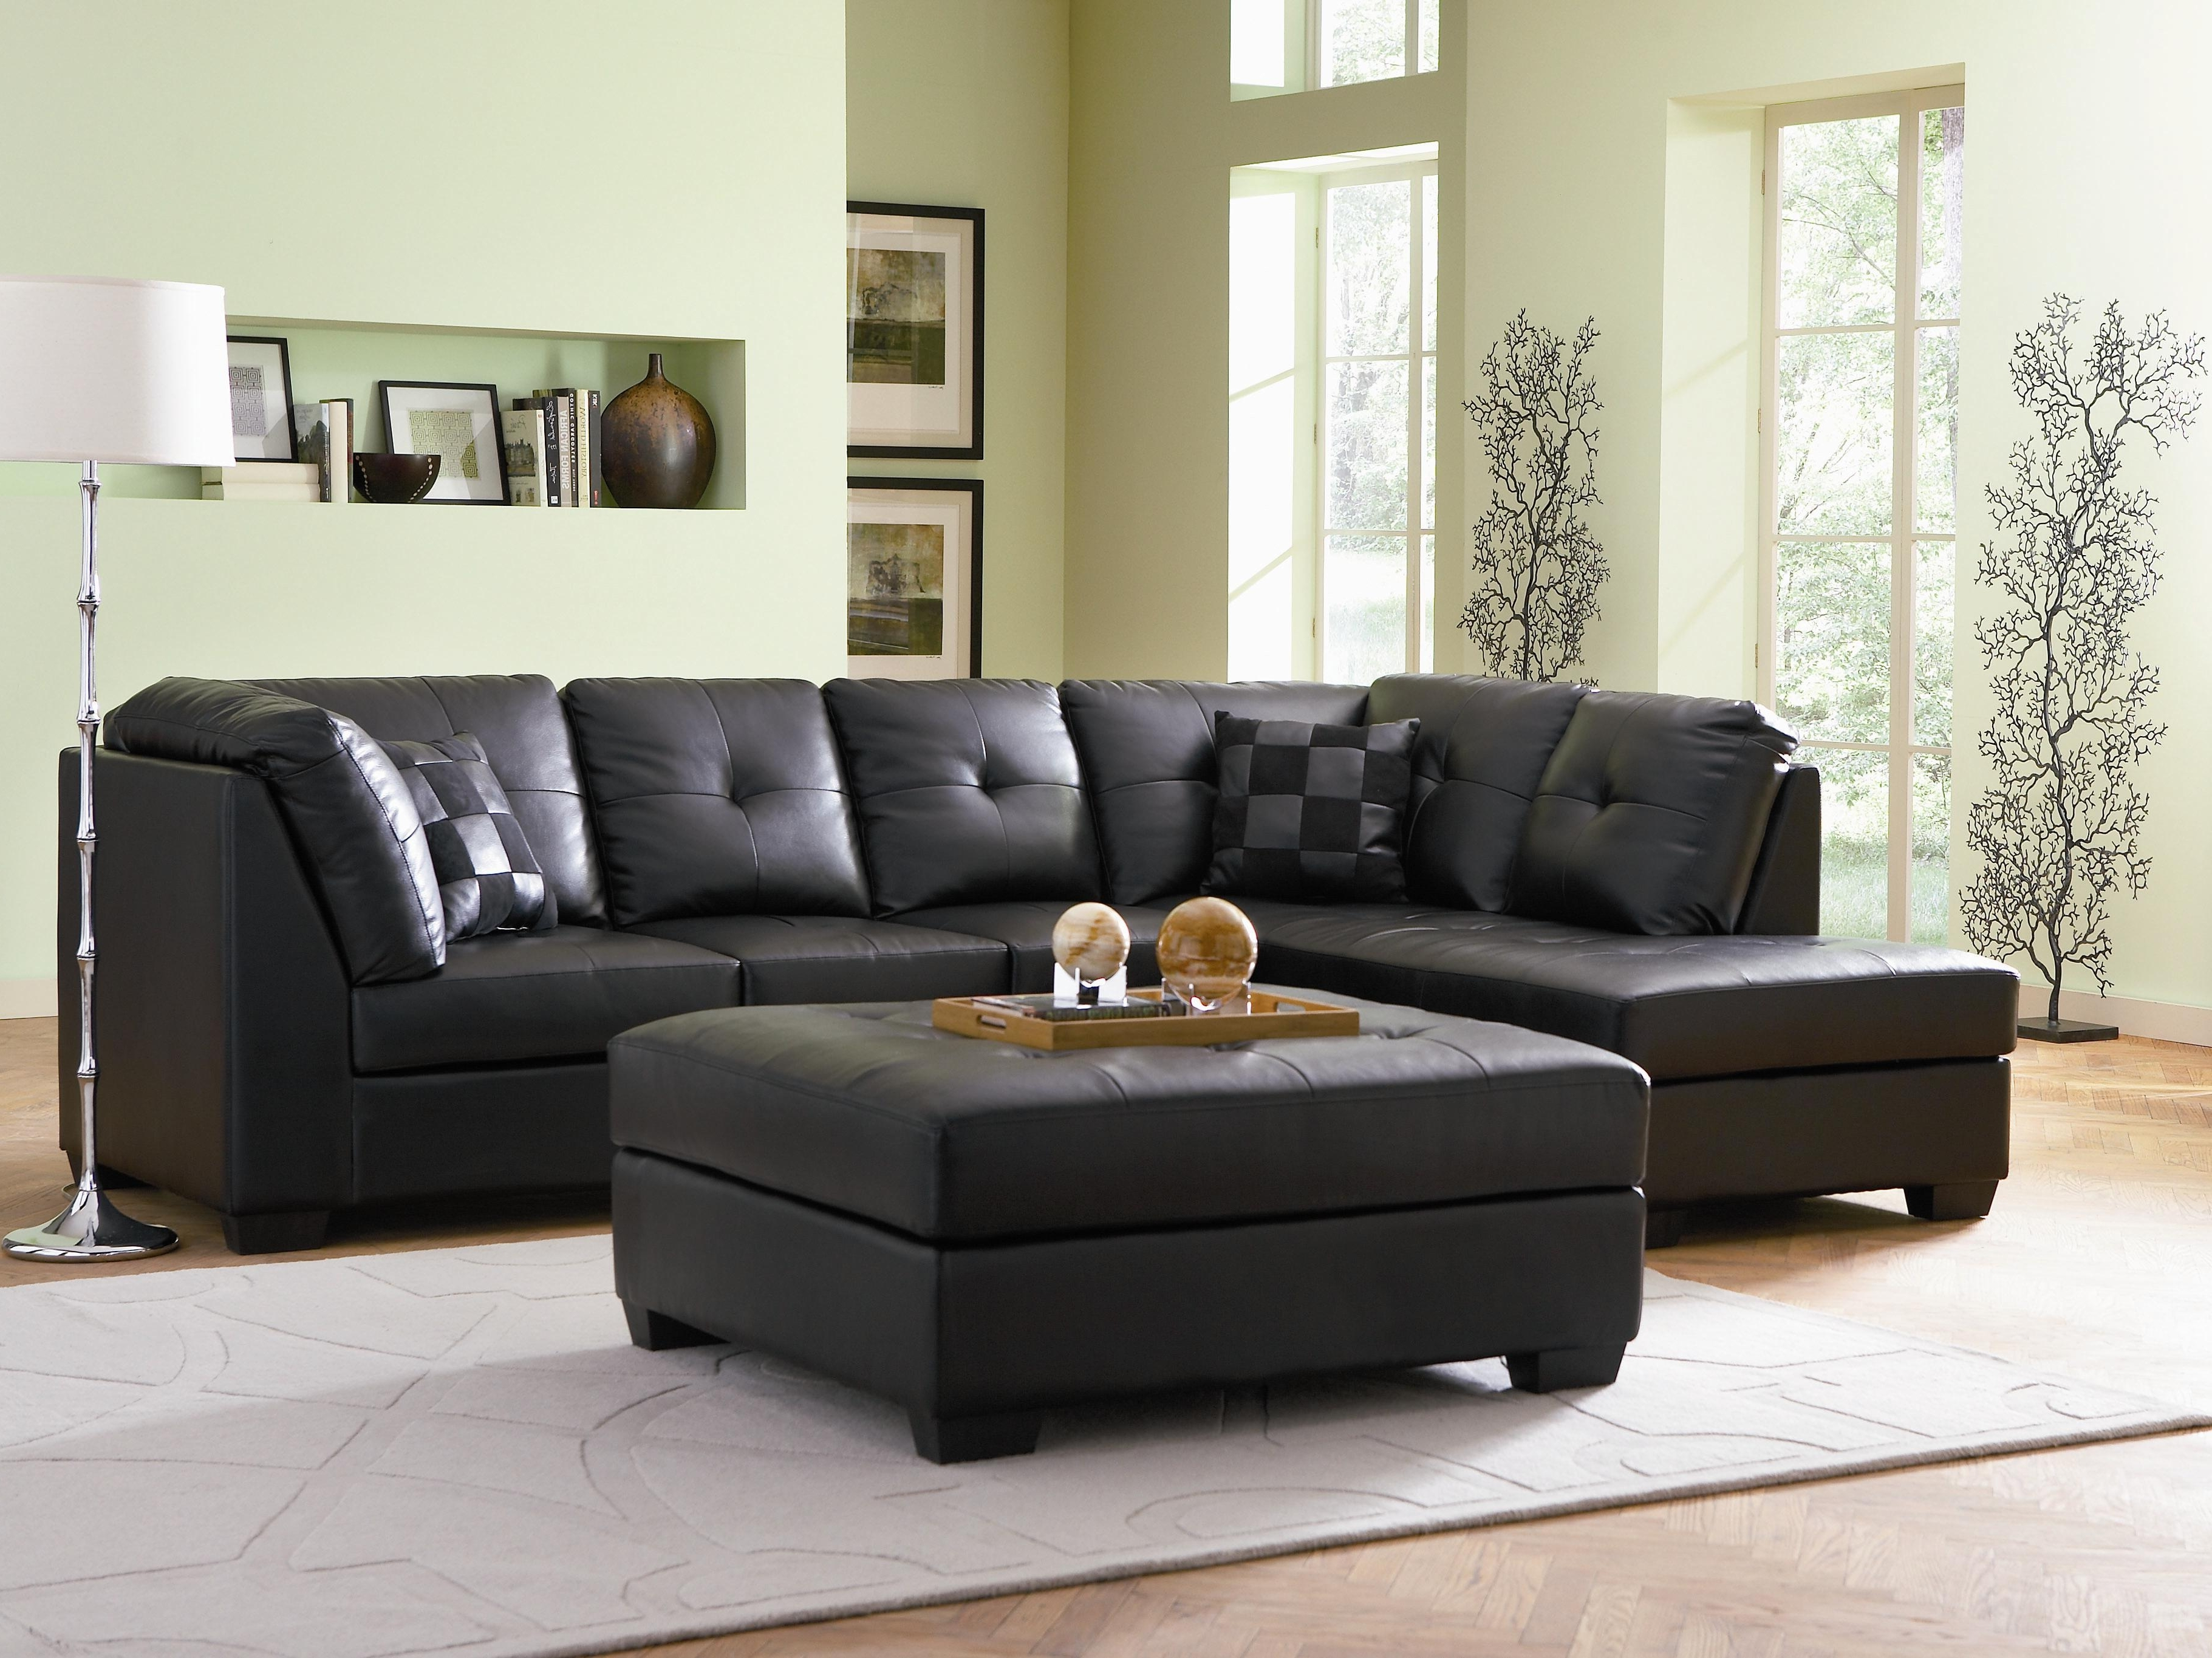 Darie Contemporary Style Black Bonded Leather Sofa Sectional W Intended For Current Black Leather Sectionals With Ottoman (View 8 of 20)